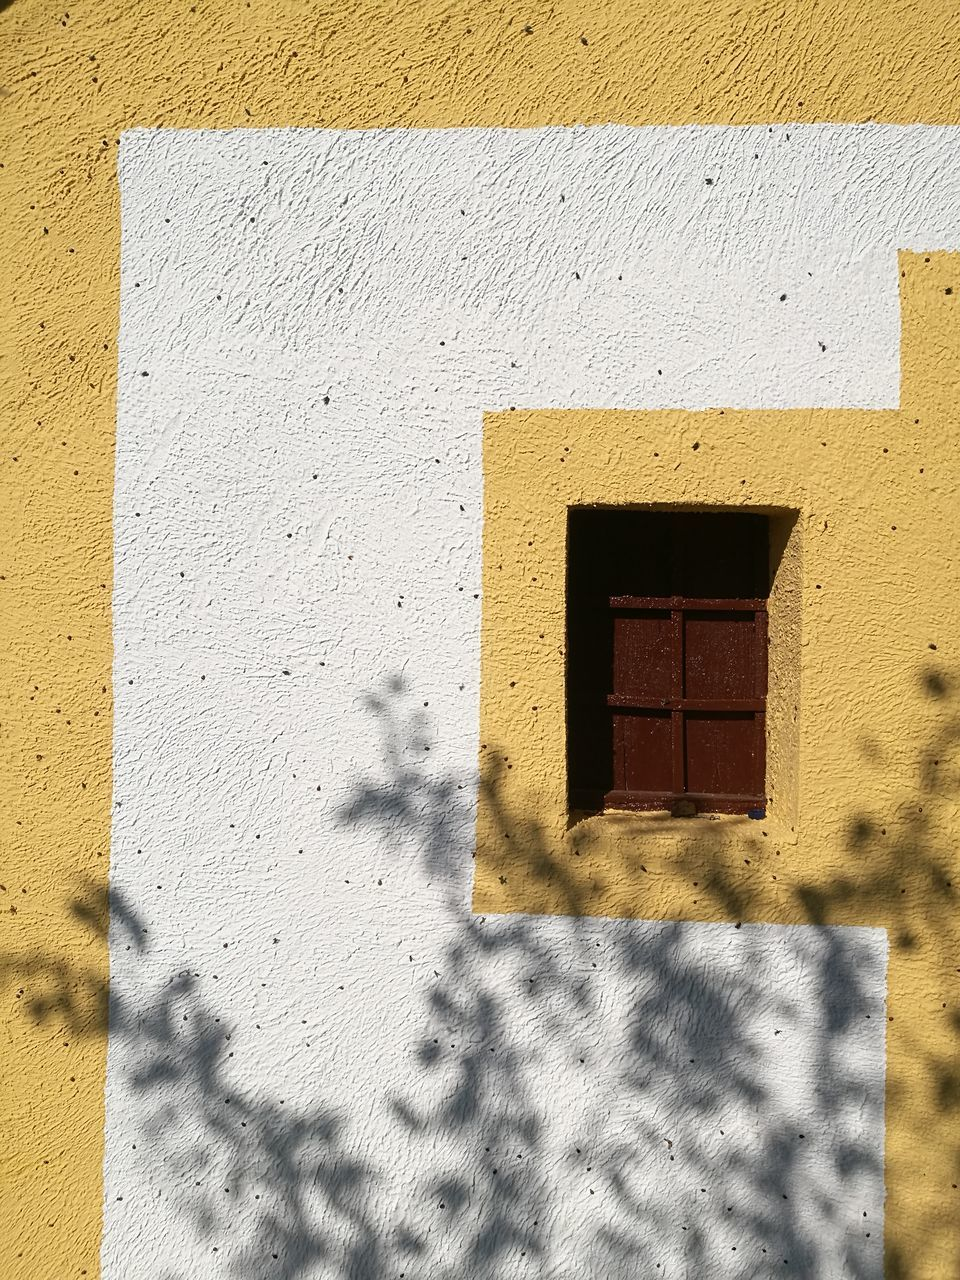 wall - building feature, built structure, architecture, shadow, yellow, building exterior, day, sunlight, outdoors, window, textured, no people, close-up